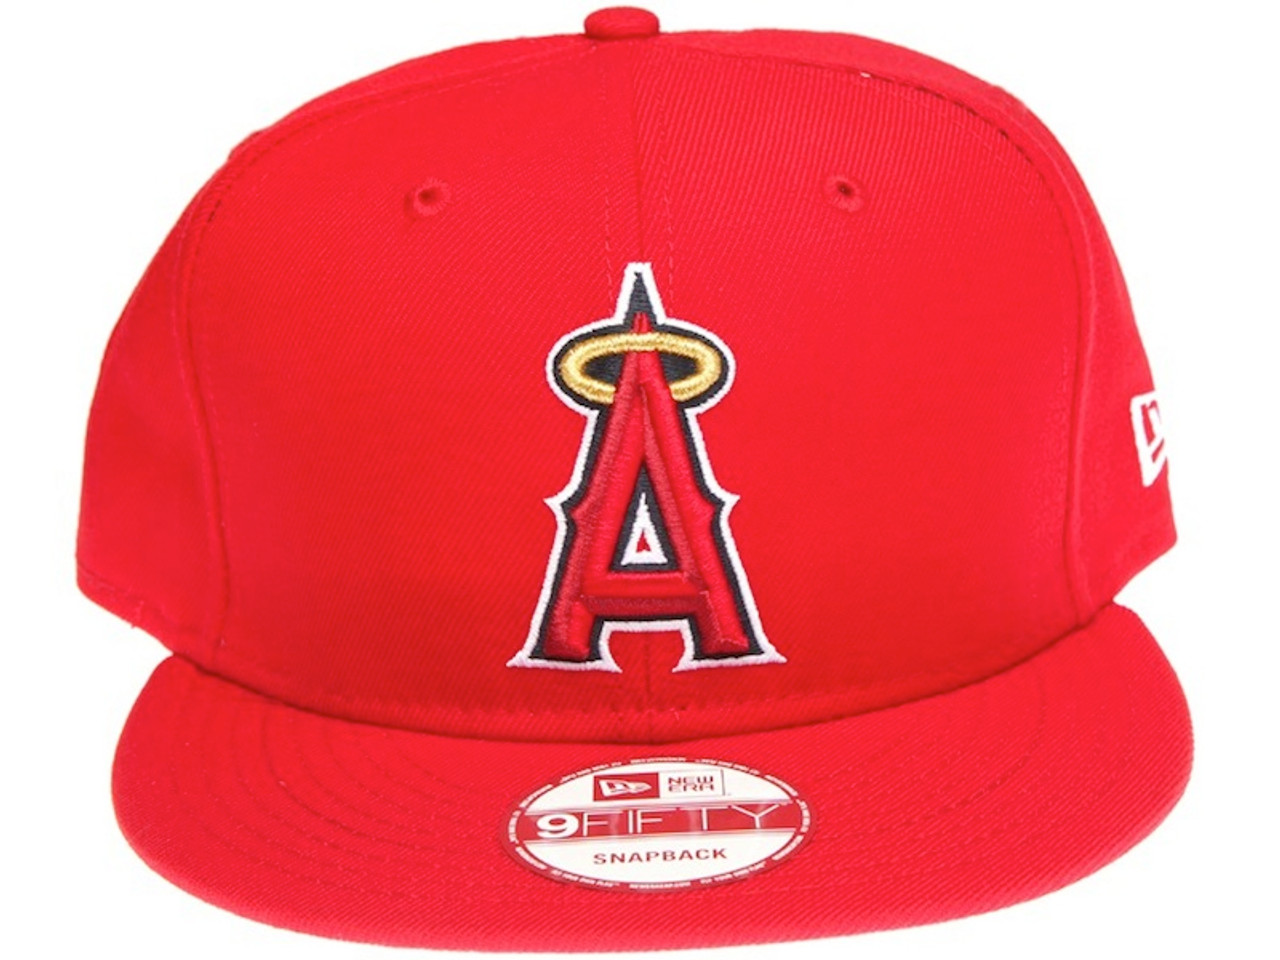 on sale 93c2b 1fe88 ... discount code for los angeles angels of anaheim on field new era red  snapback hat b8959